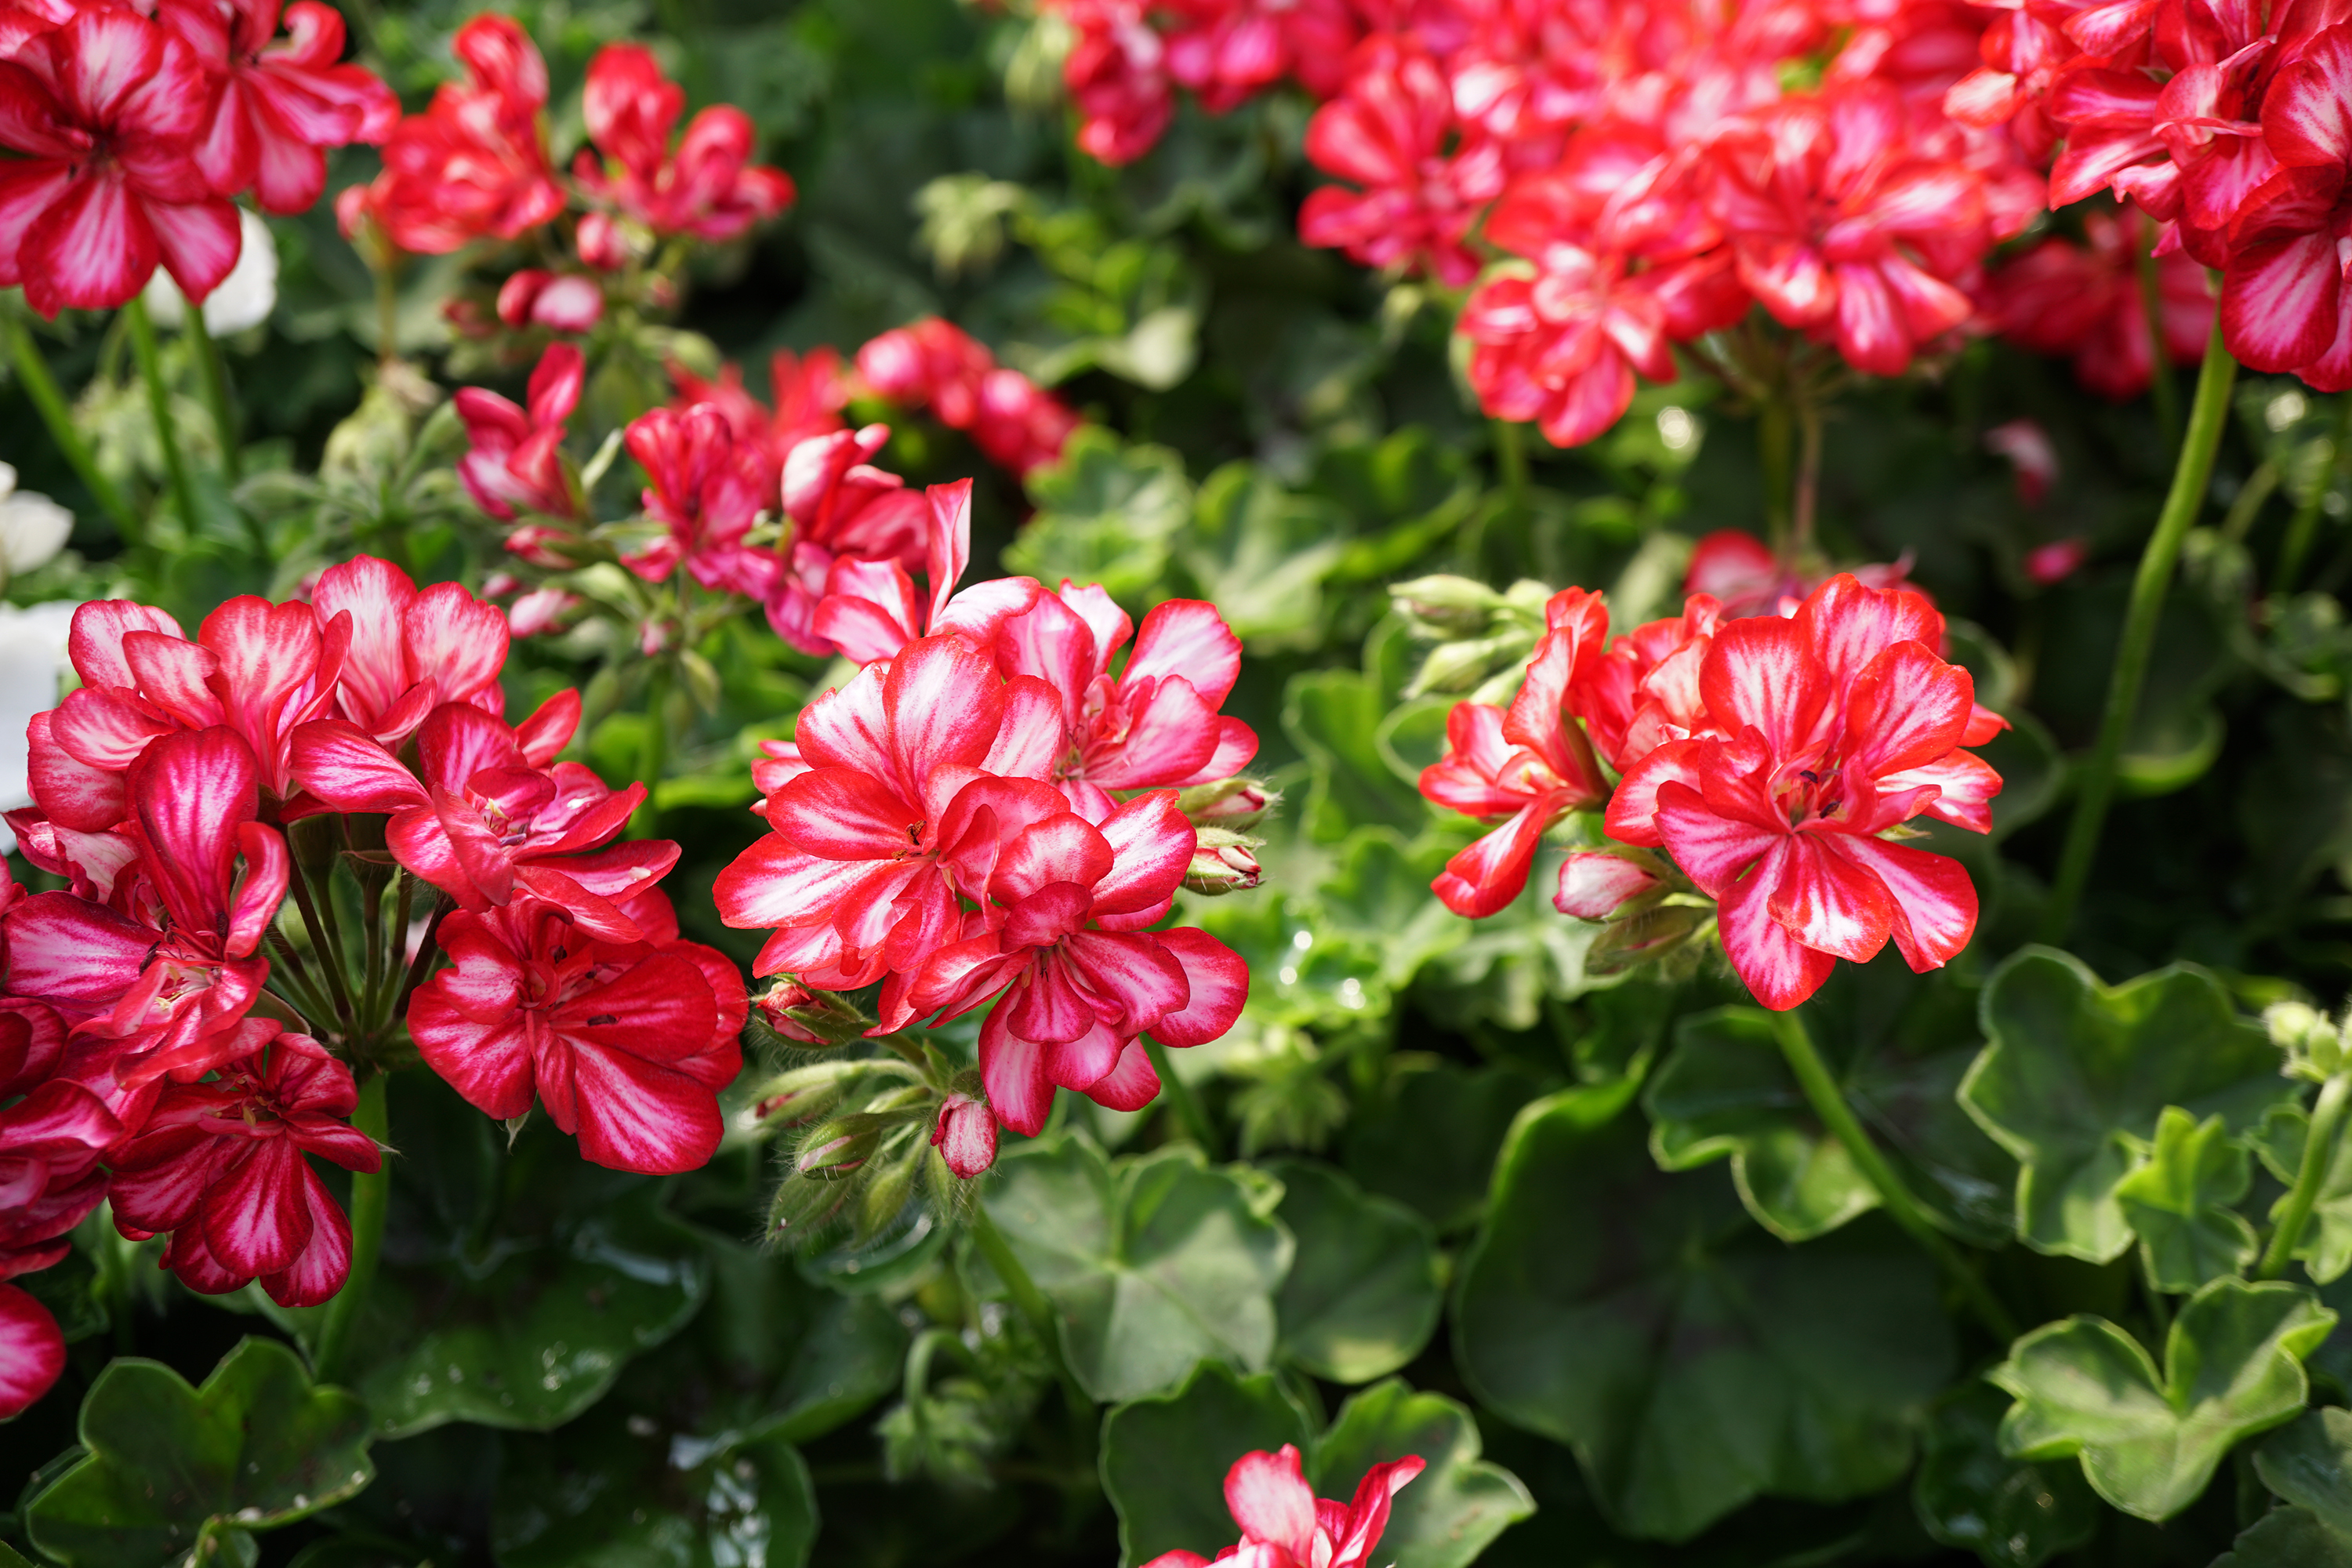 Growing geraniums indoors home garden information center ivy leafed geraniums pelargonium peltatum are trailing in habit and have leaves that izmirmasajfo